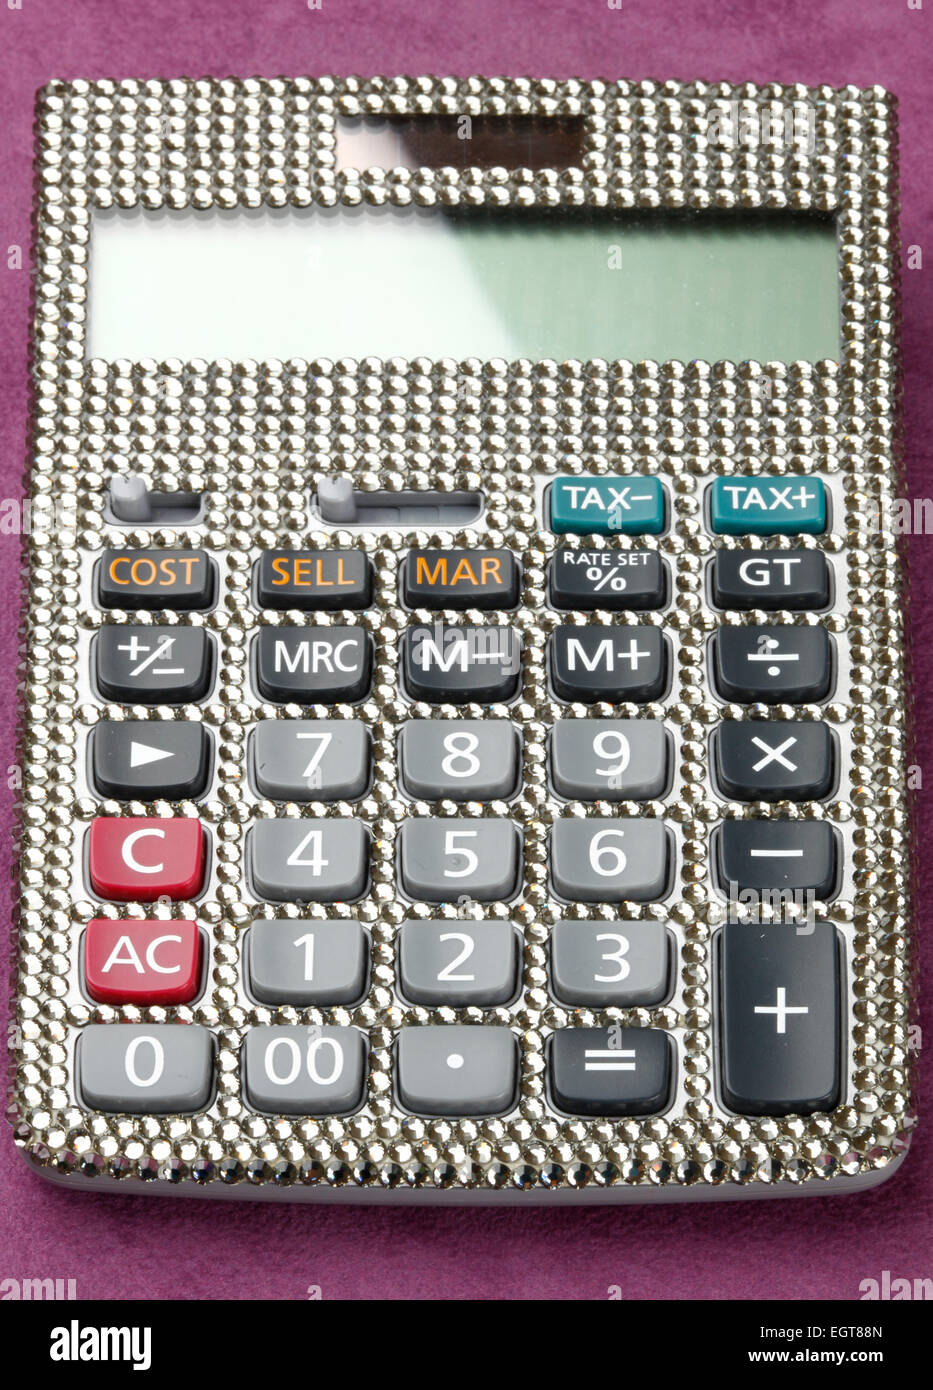 770c5e704 Calculator covered with swarovski crystals on table of velvet. - Stock Image